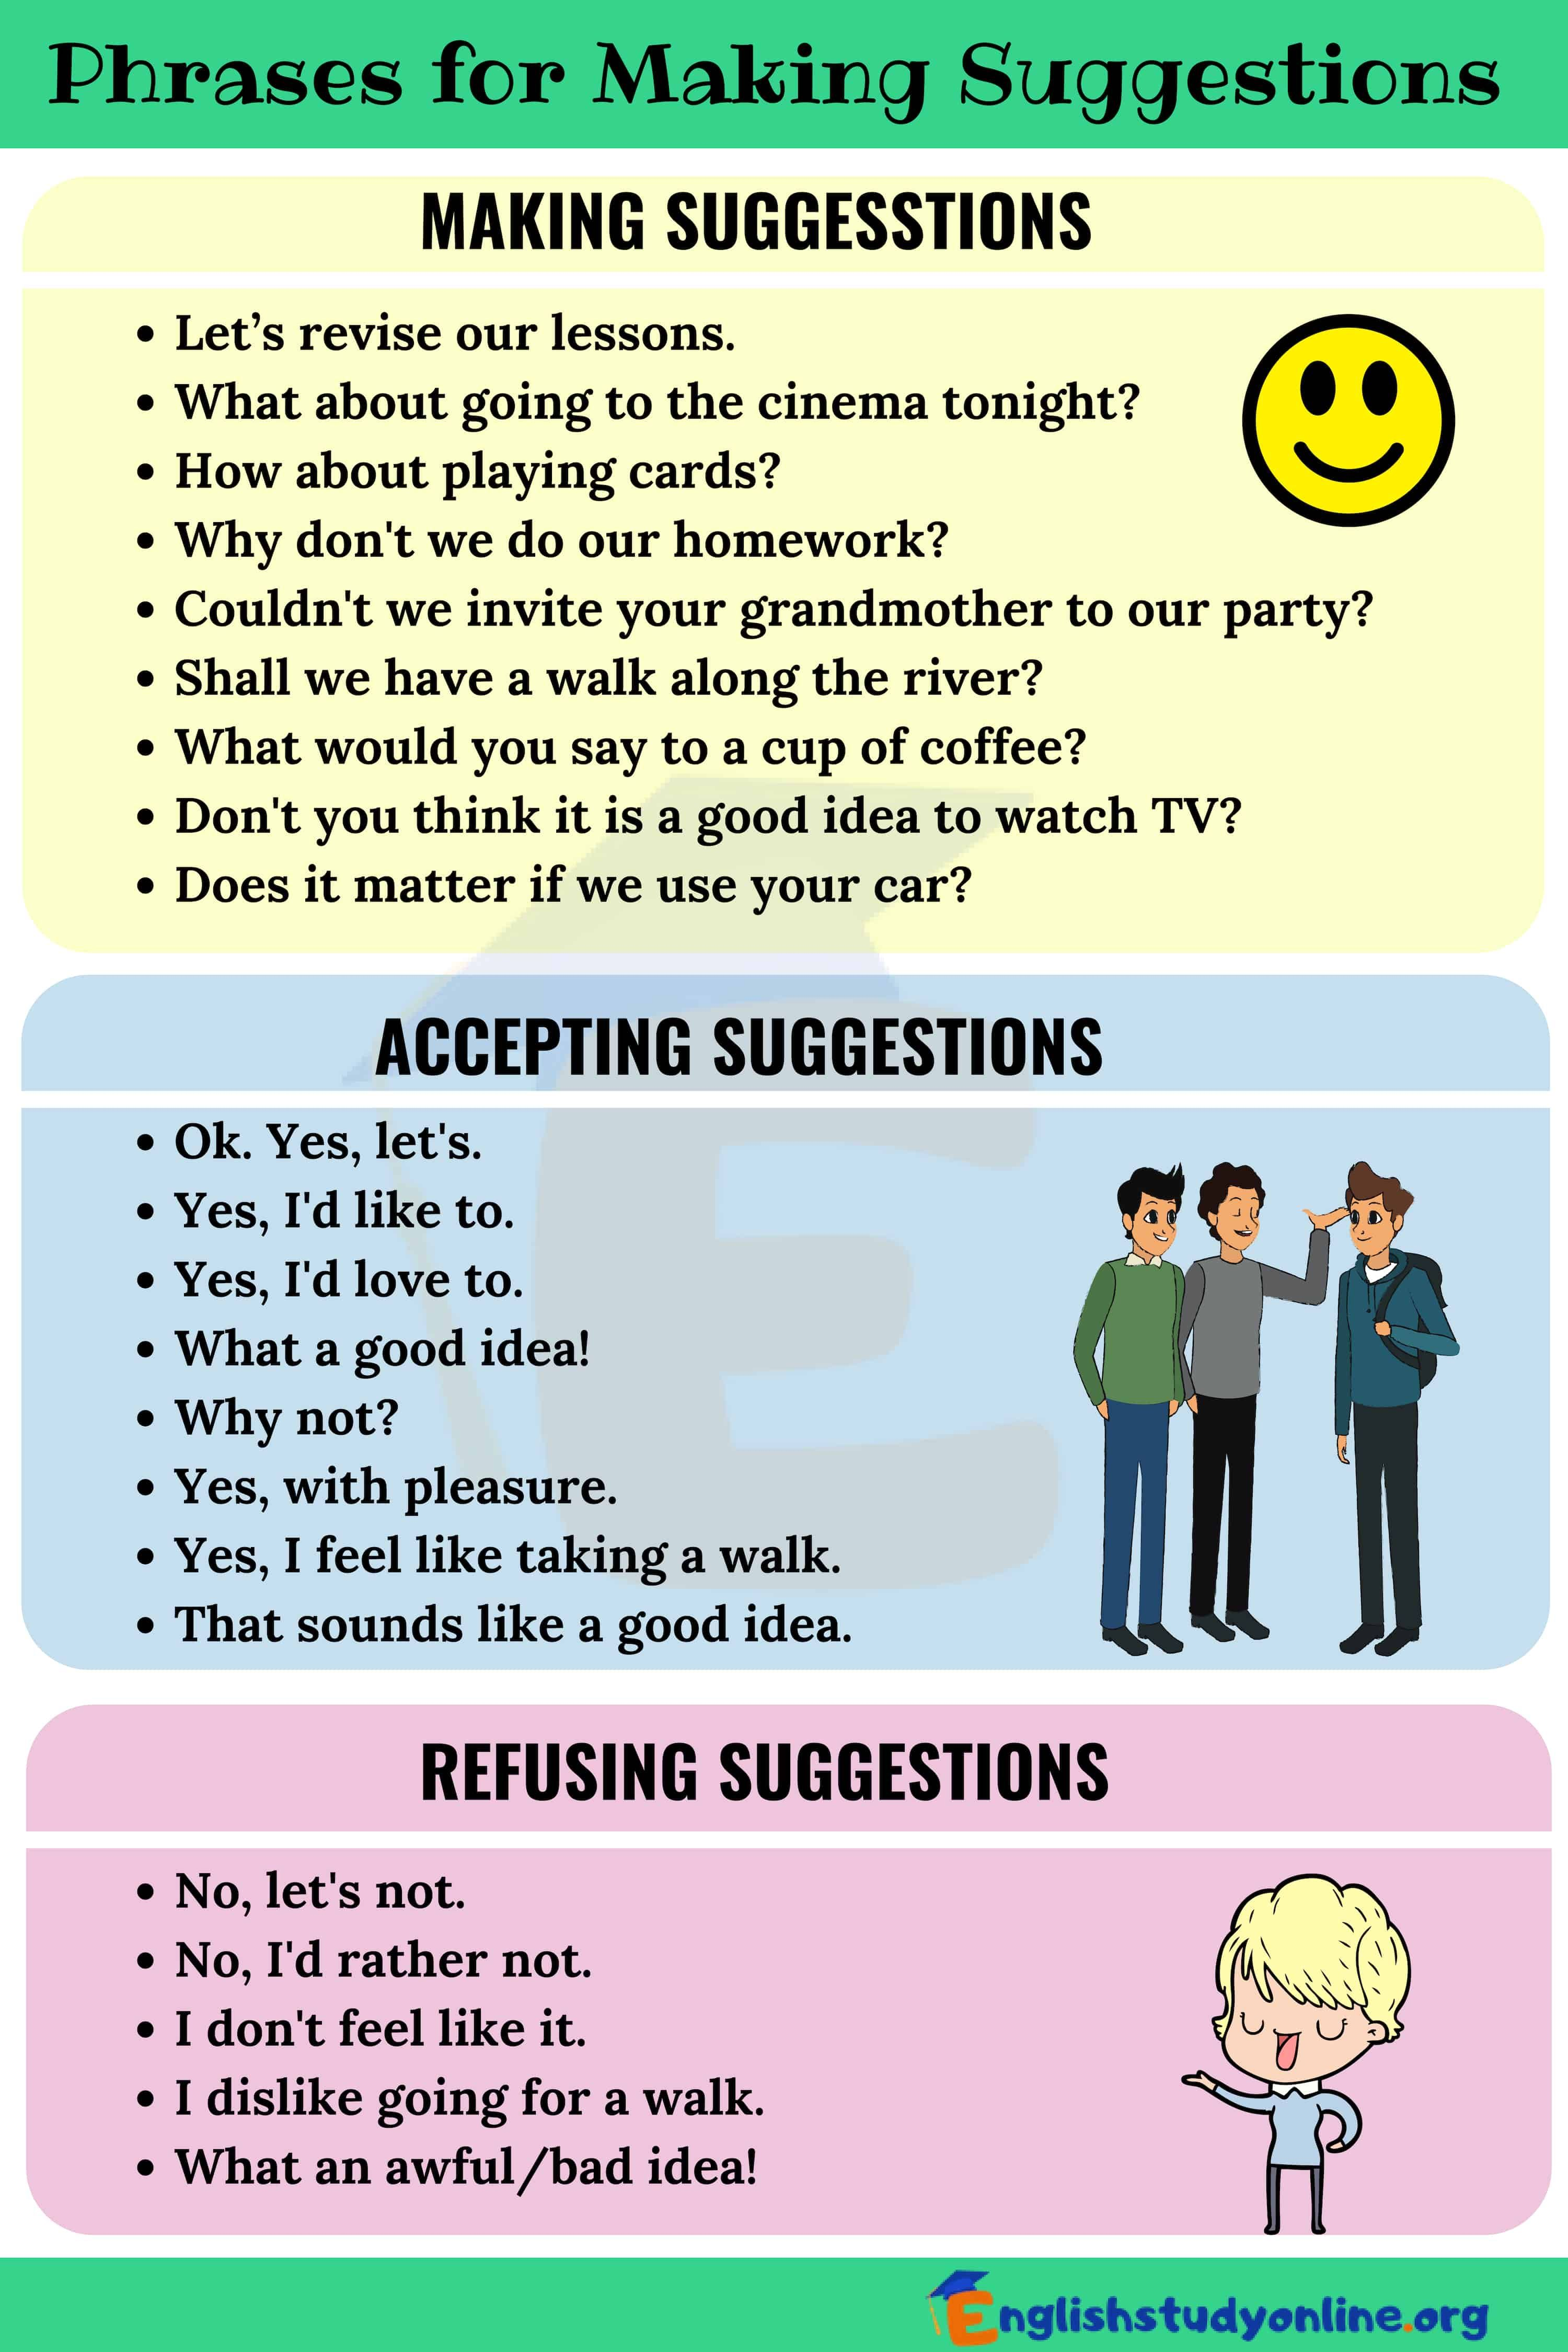 Making Suggestions Many Useful Phrases To Make Suggestions In English English Study On In 2020 English Conversation Learning English Study Learn English Vocabulary